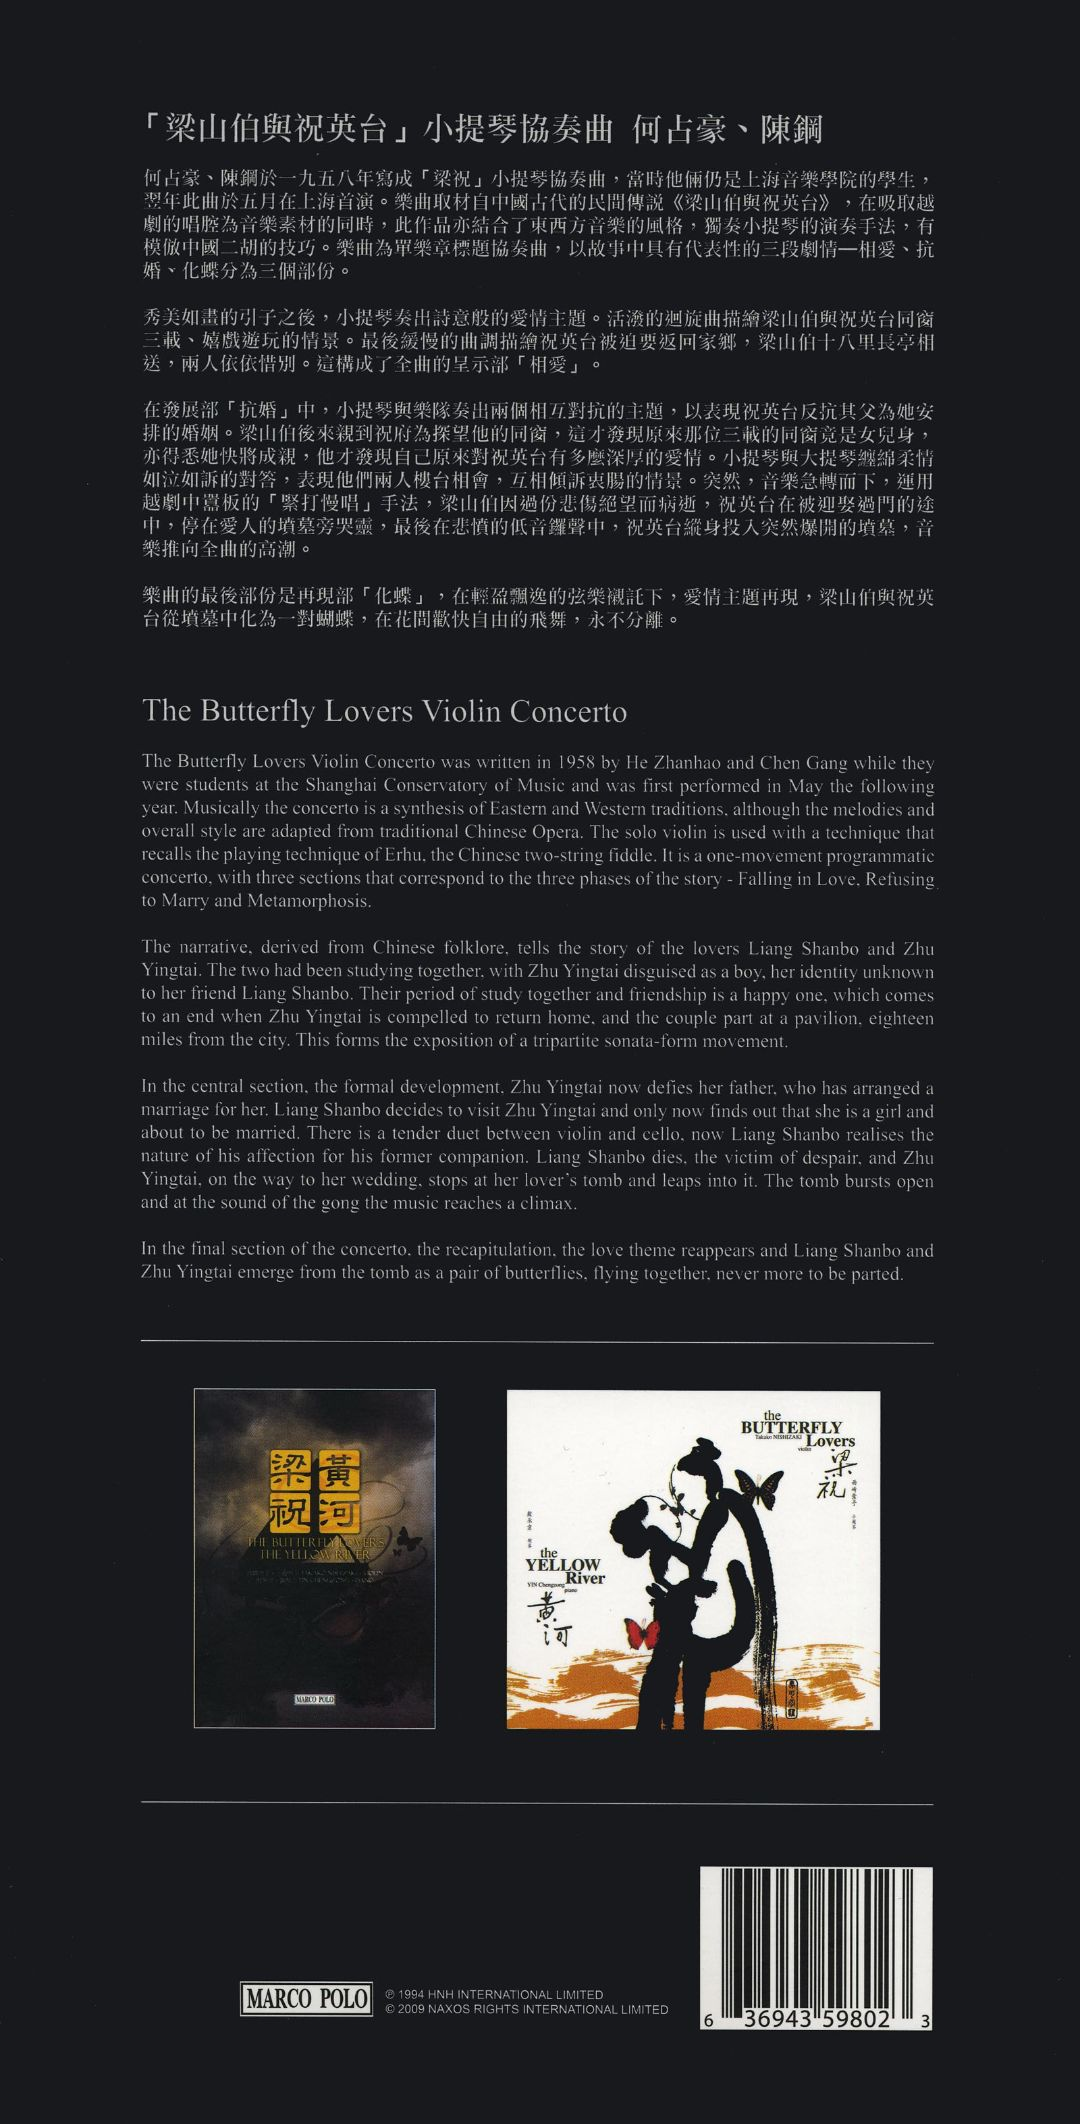 The Butterfly Lovers Violin Concerto: 50th Anniversary Edition